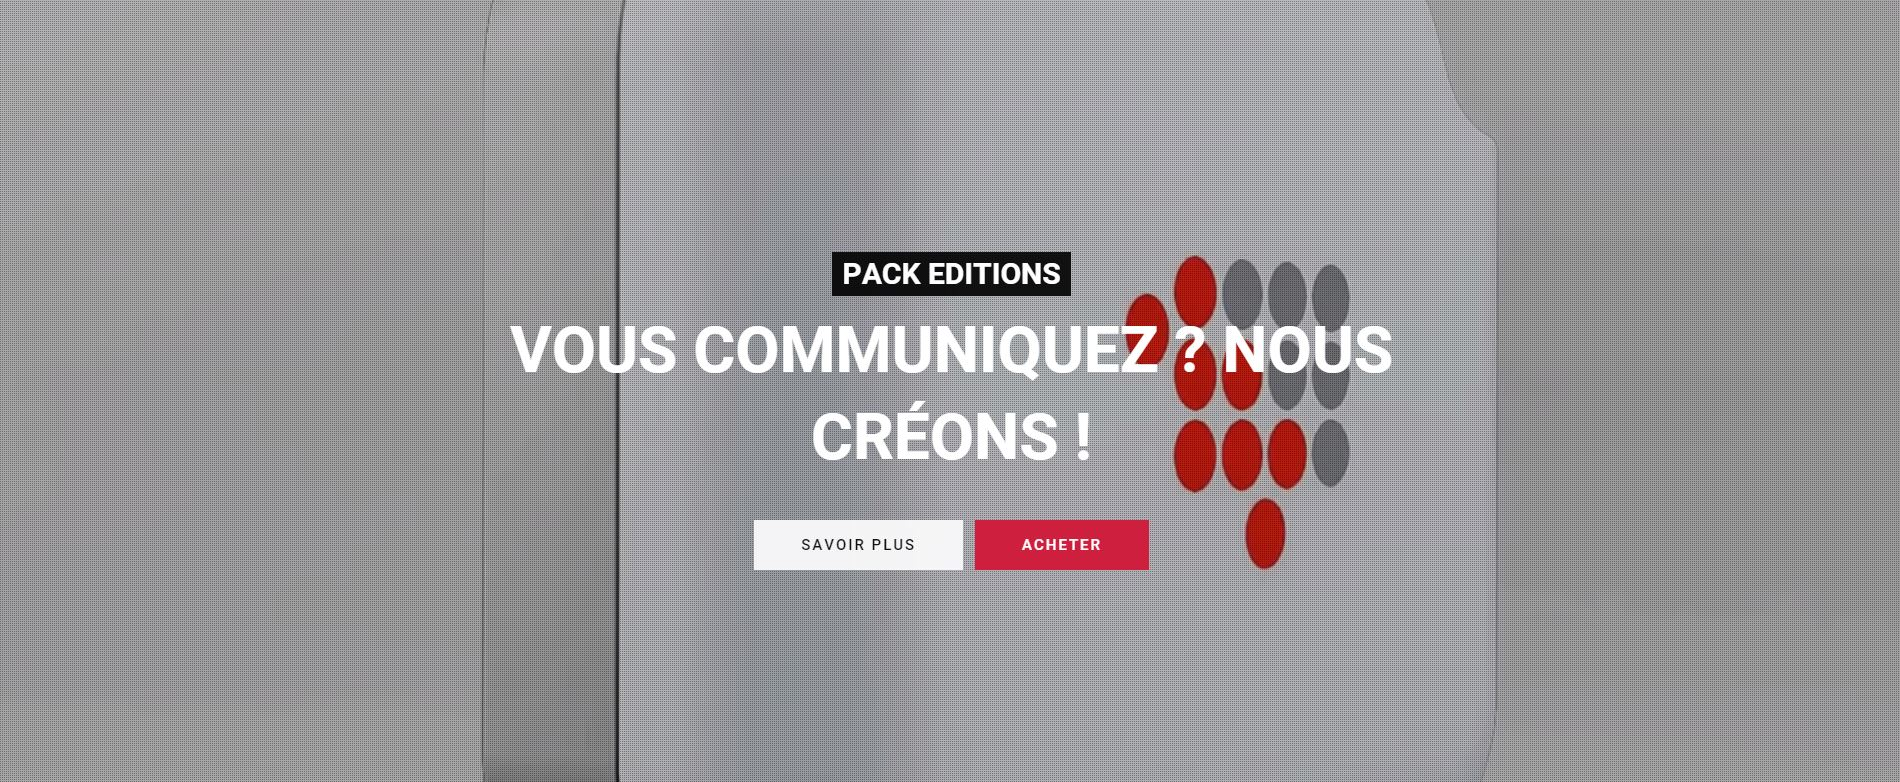 packeditions